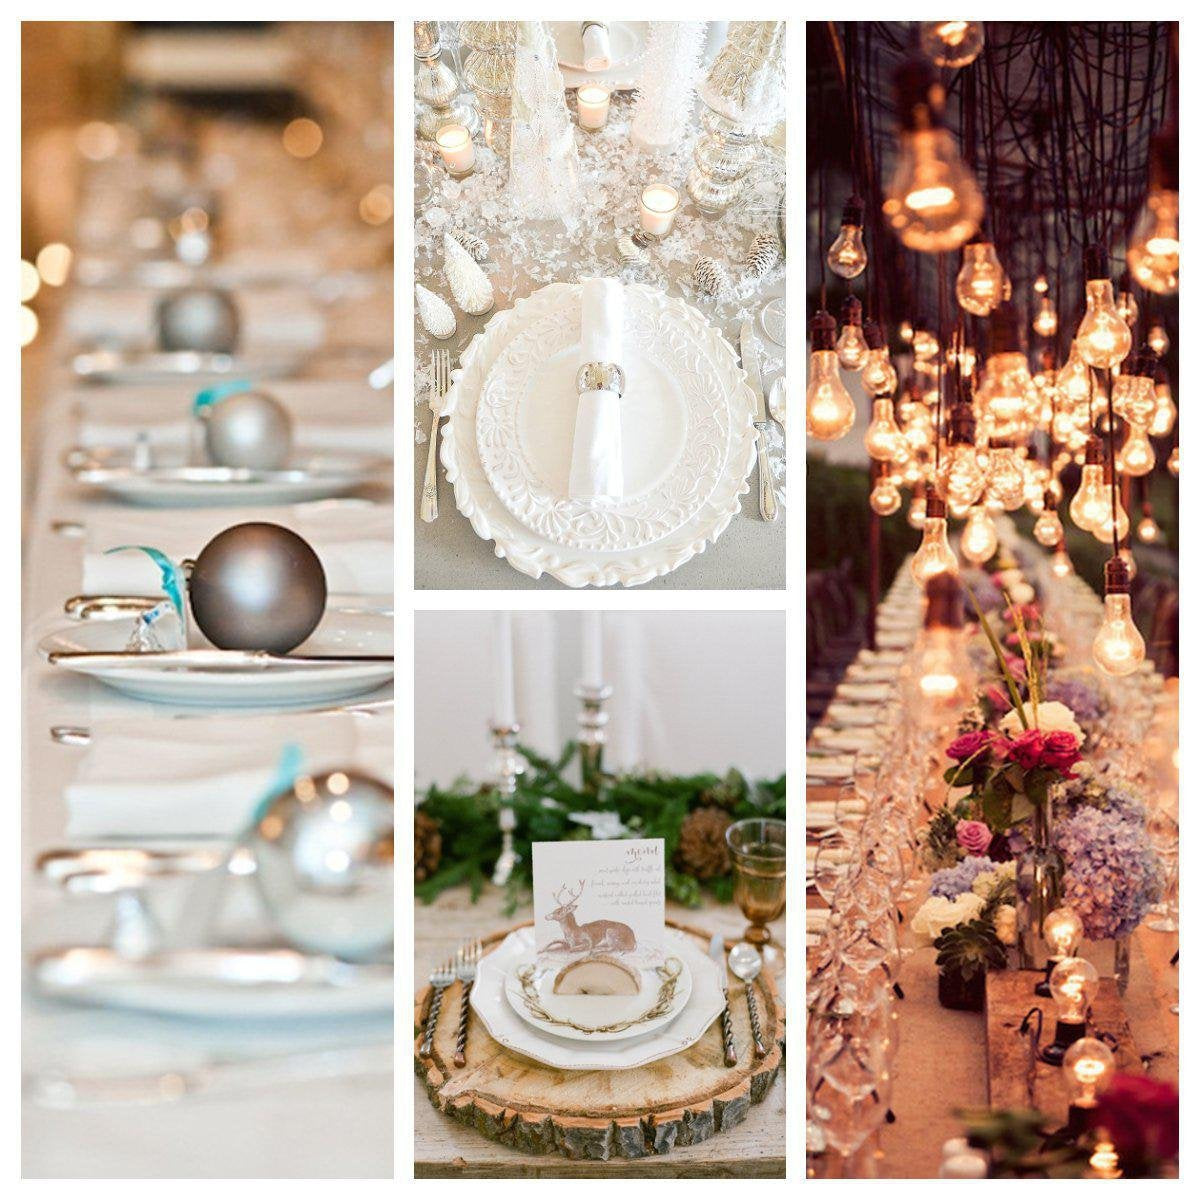 Our Top 10 Winter Wedding Table Setting Ideas-Koyal Wholesale